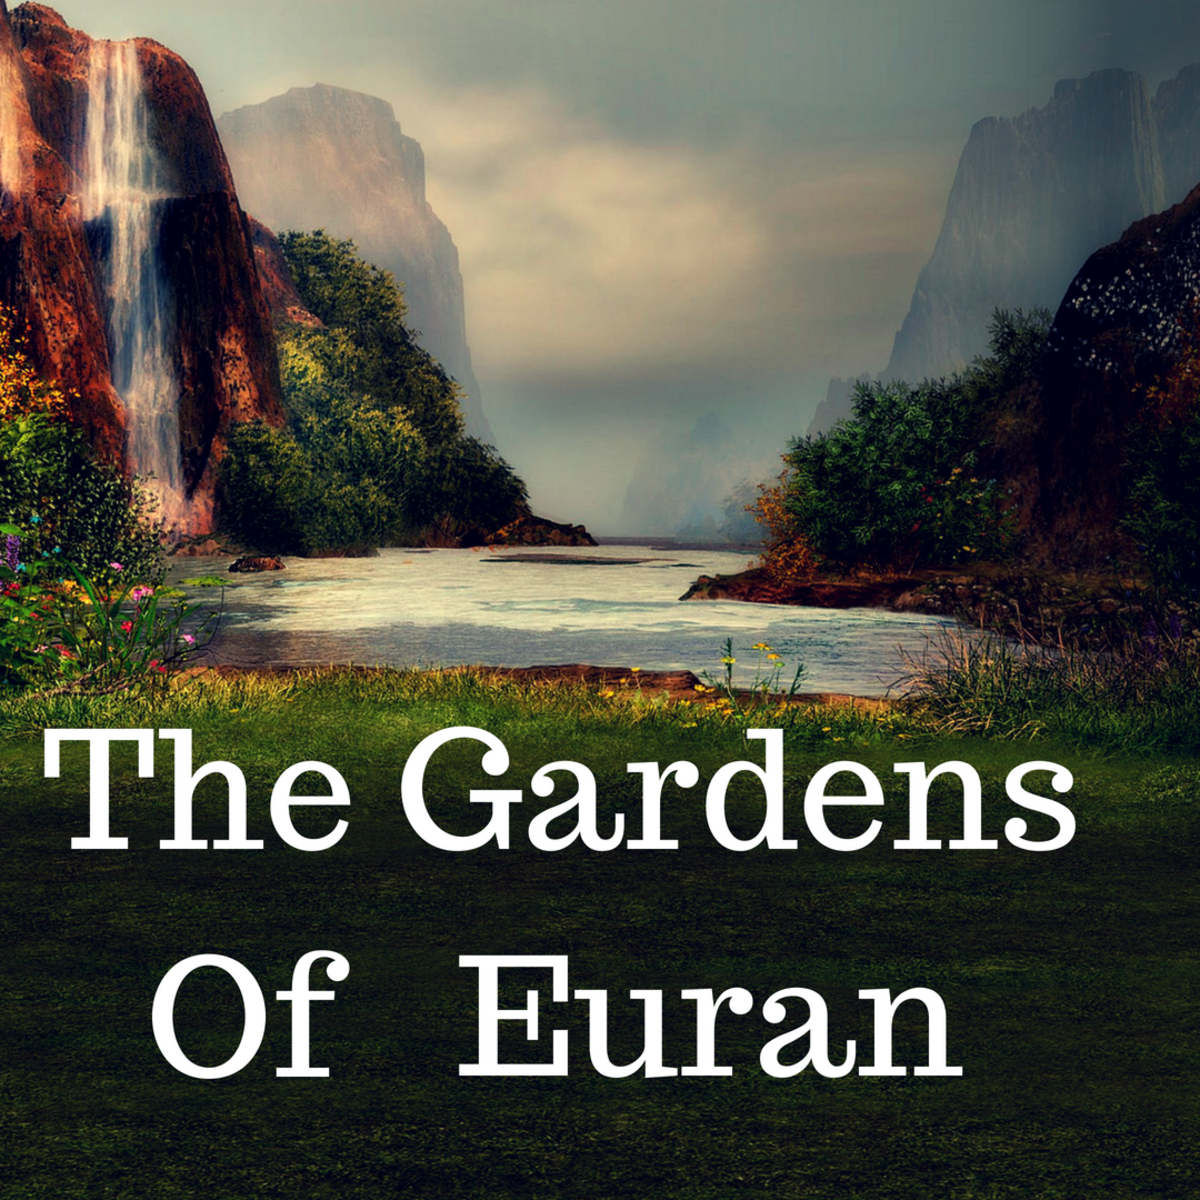 The Gardens of Euran: Chapter 1 (a novella)